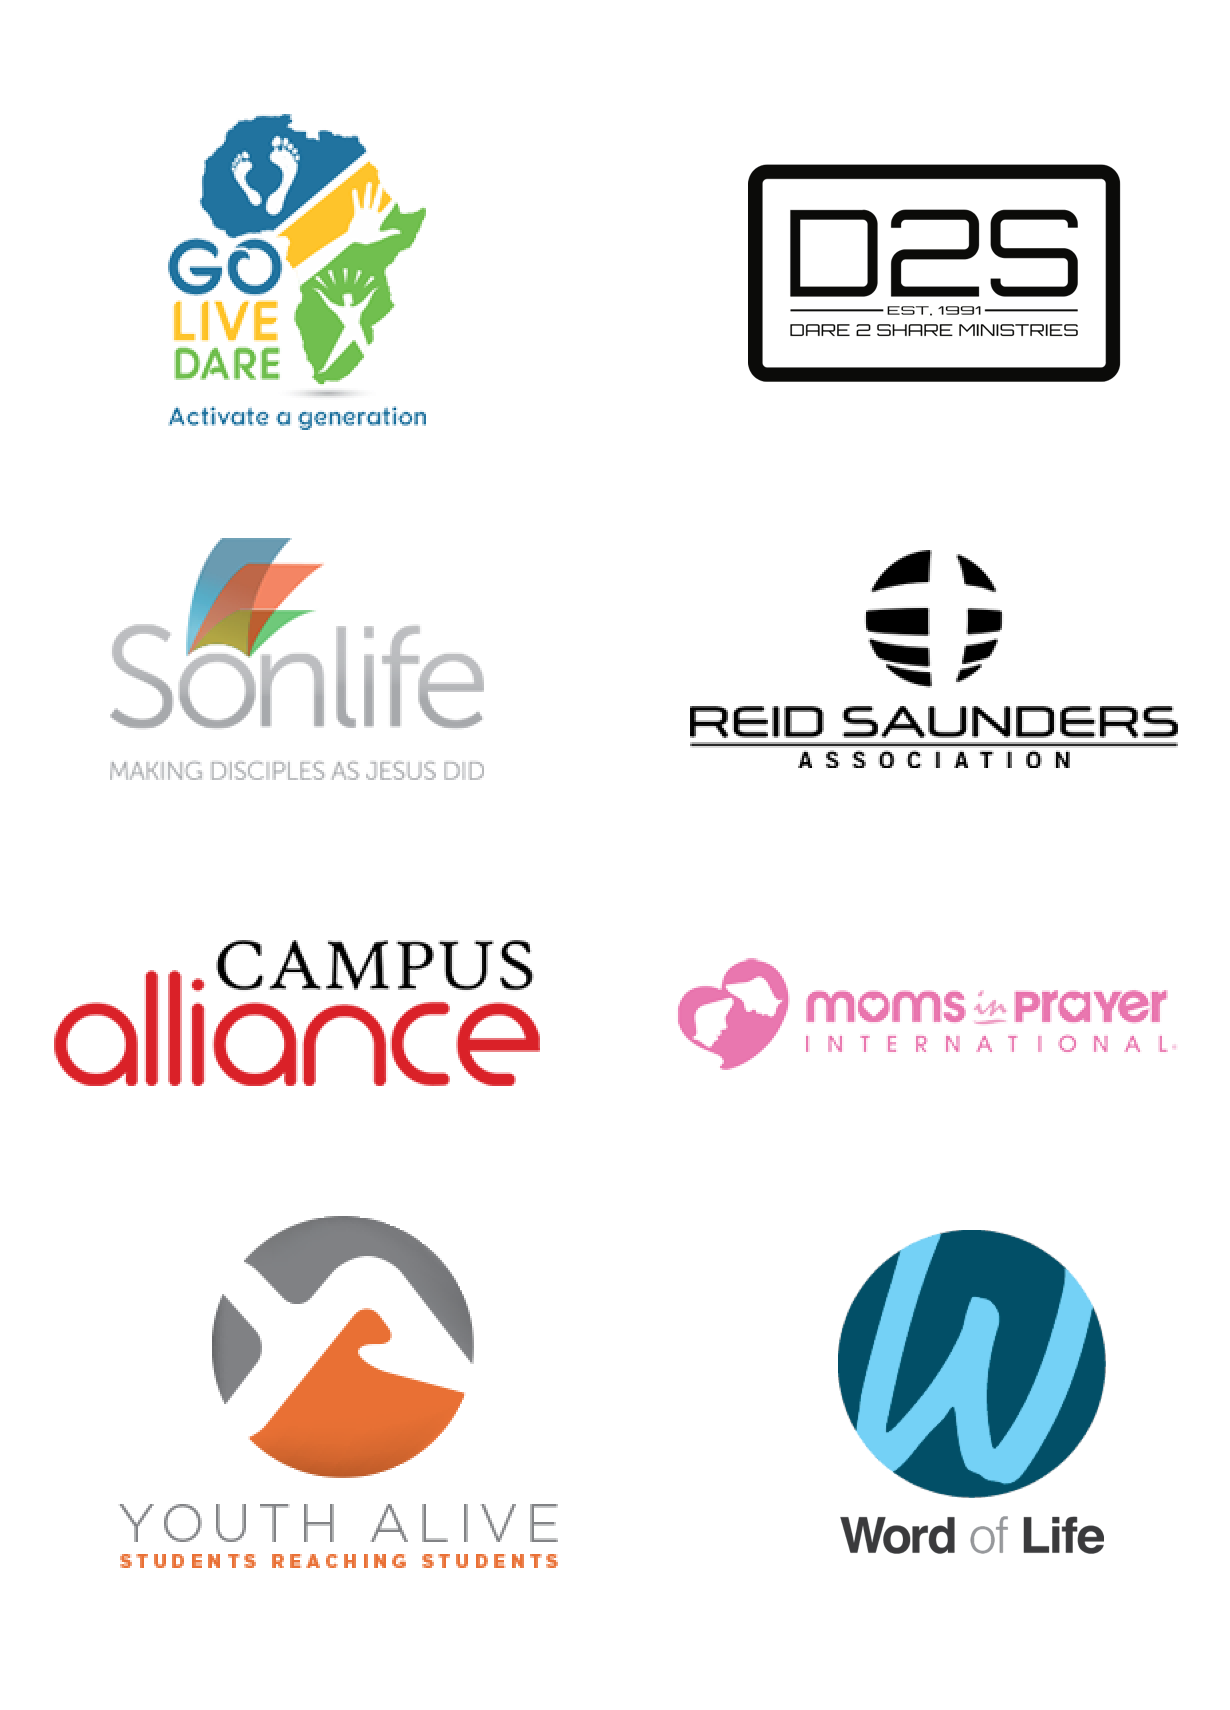 About Gospel Advancing Ministry. What is a Gospel Advancing Ministry? What does a Gospel Advancing Ministry Look Like? How do I become a Gospel Advancing Ministry? Gospel Advancing Ministry Sponsors. GAM Sponsors. Image of the Gospel Advancing Ministry Sponsor logos.